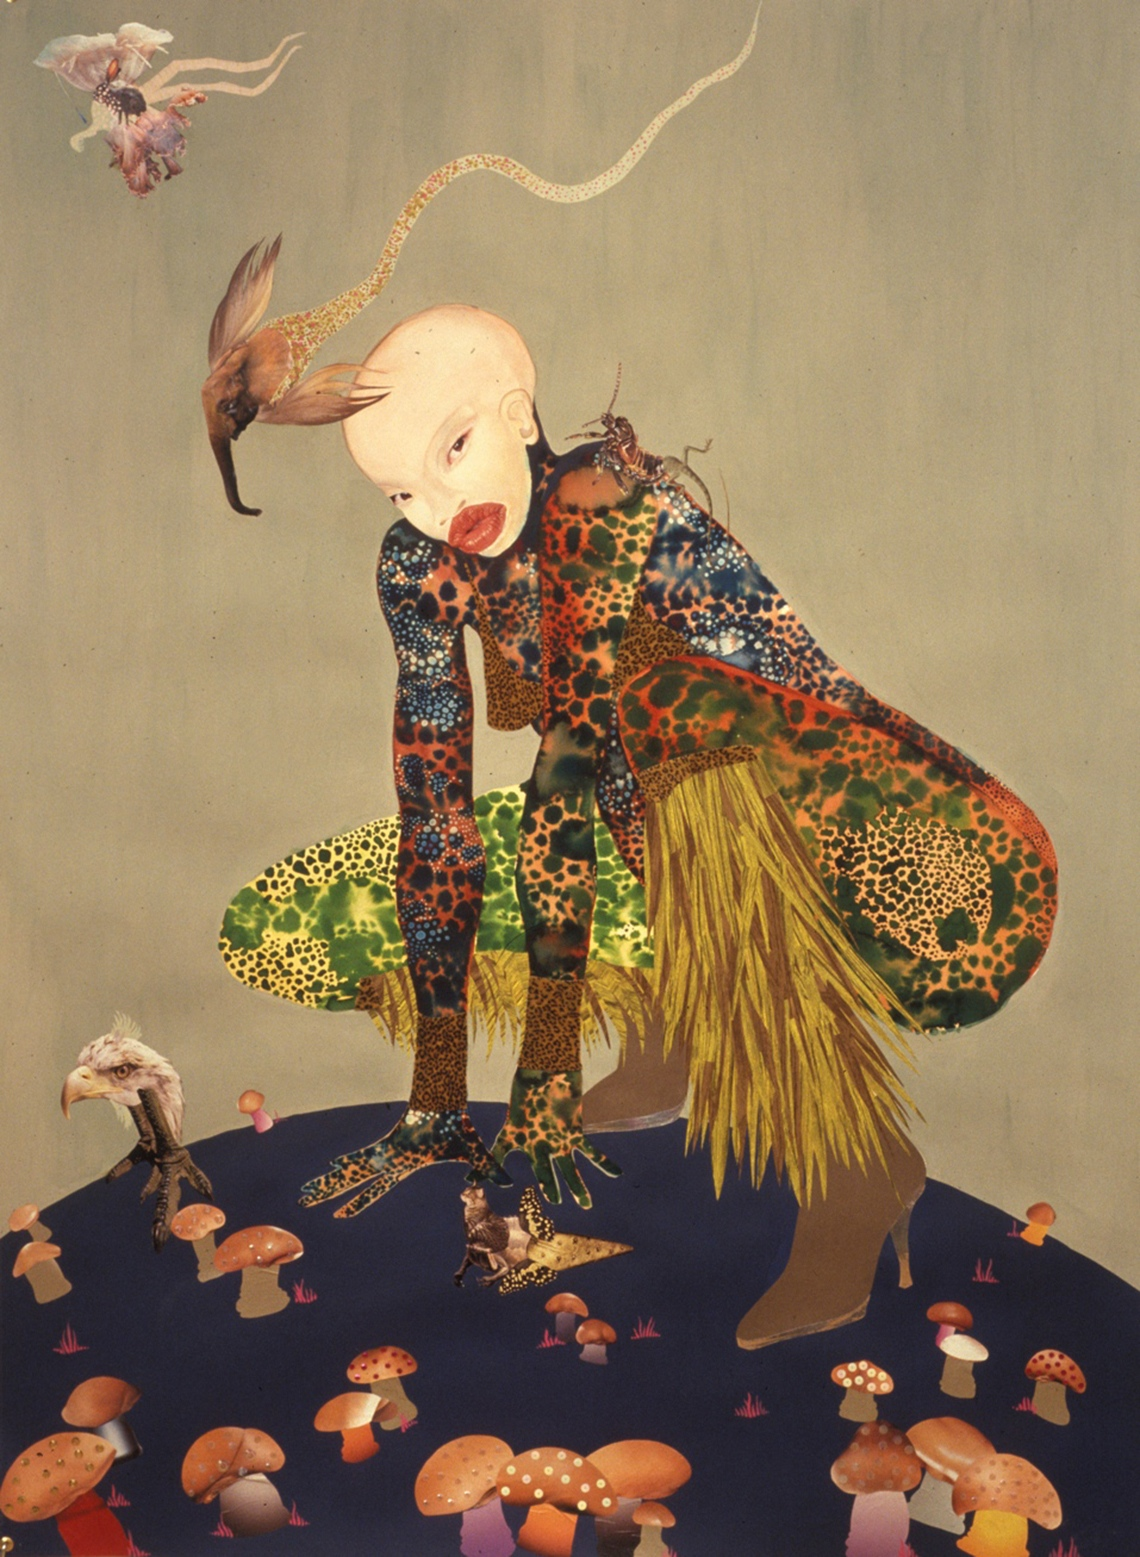 cavetocanvas: Wangechi Mutu, Riding Death in My Sleep, 2002